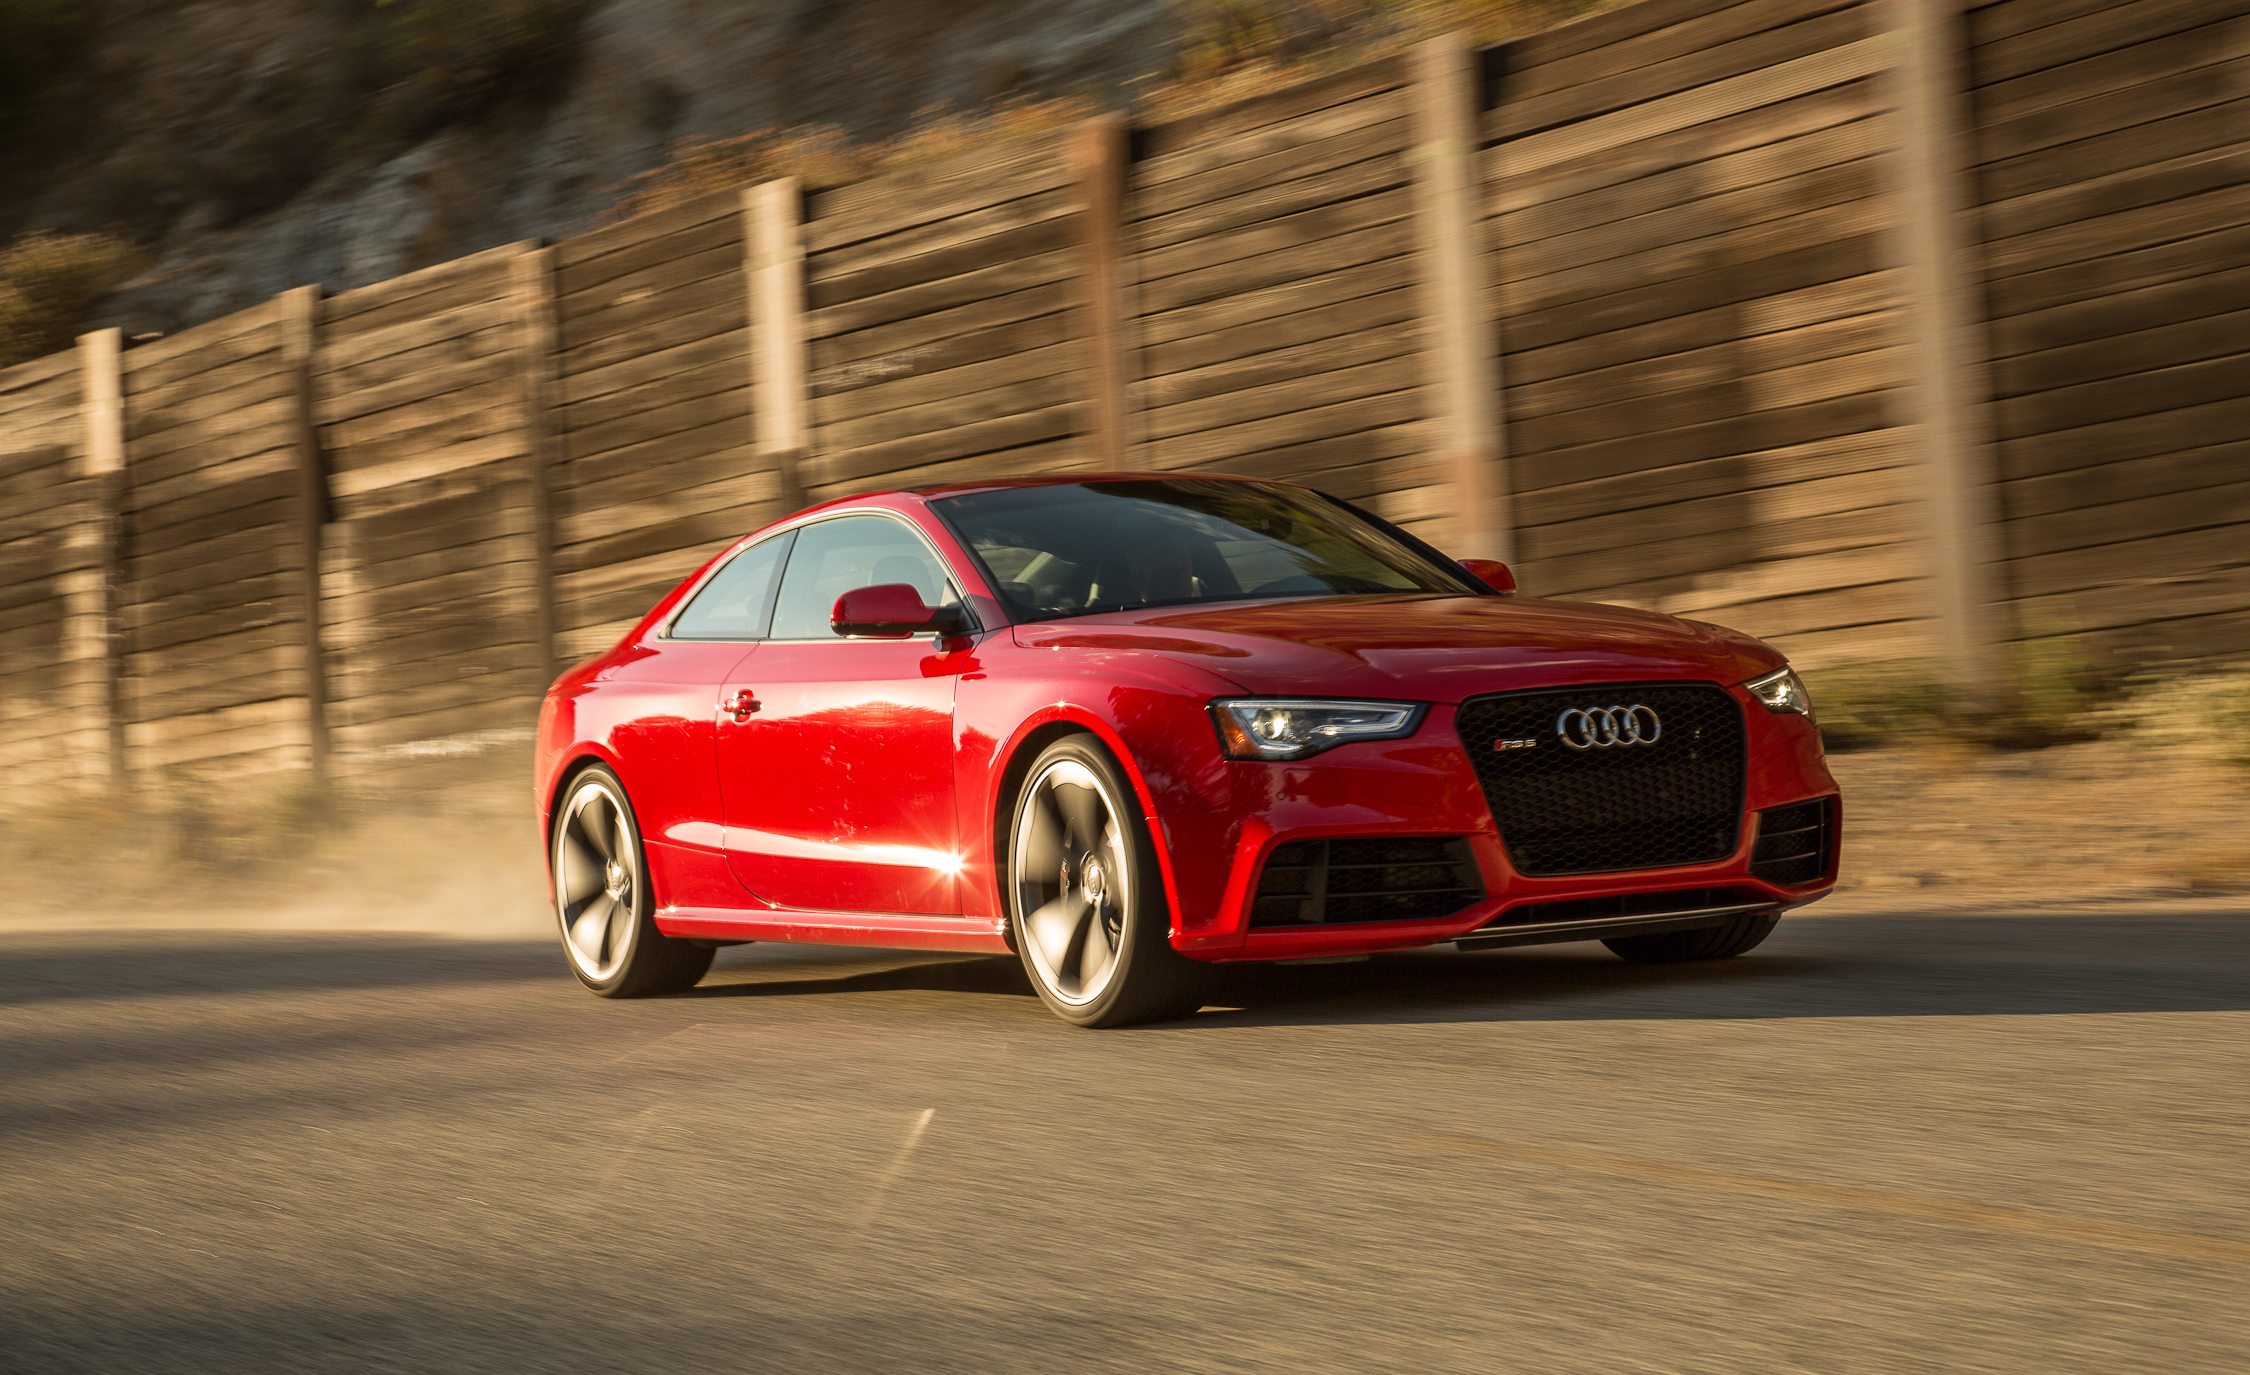 2013 Audi RS 5 Pictures Gallery (41 Images)